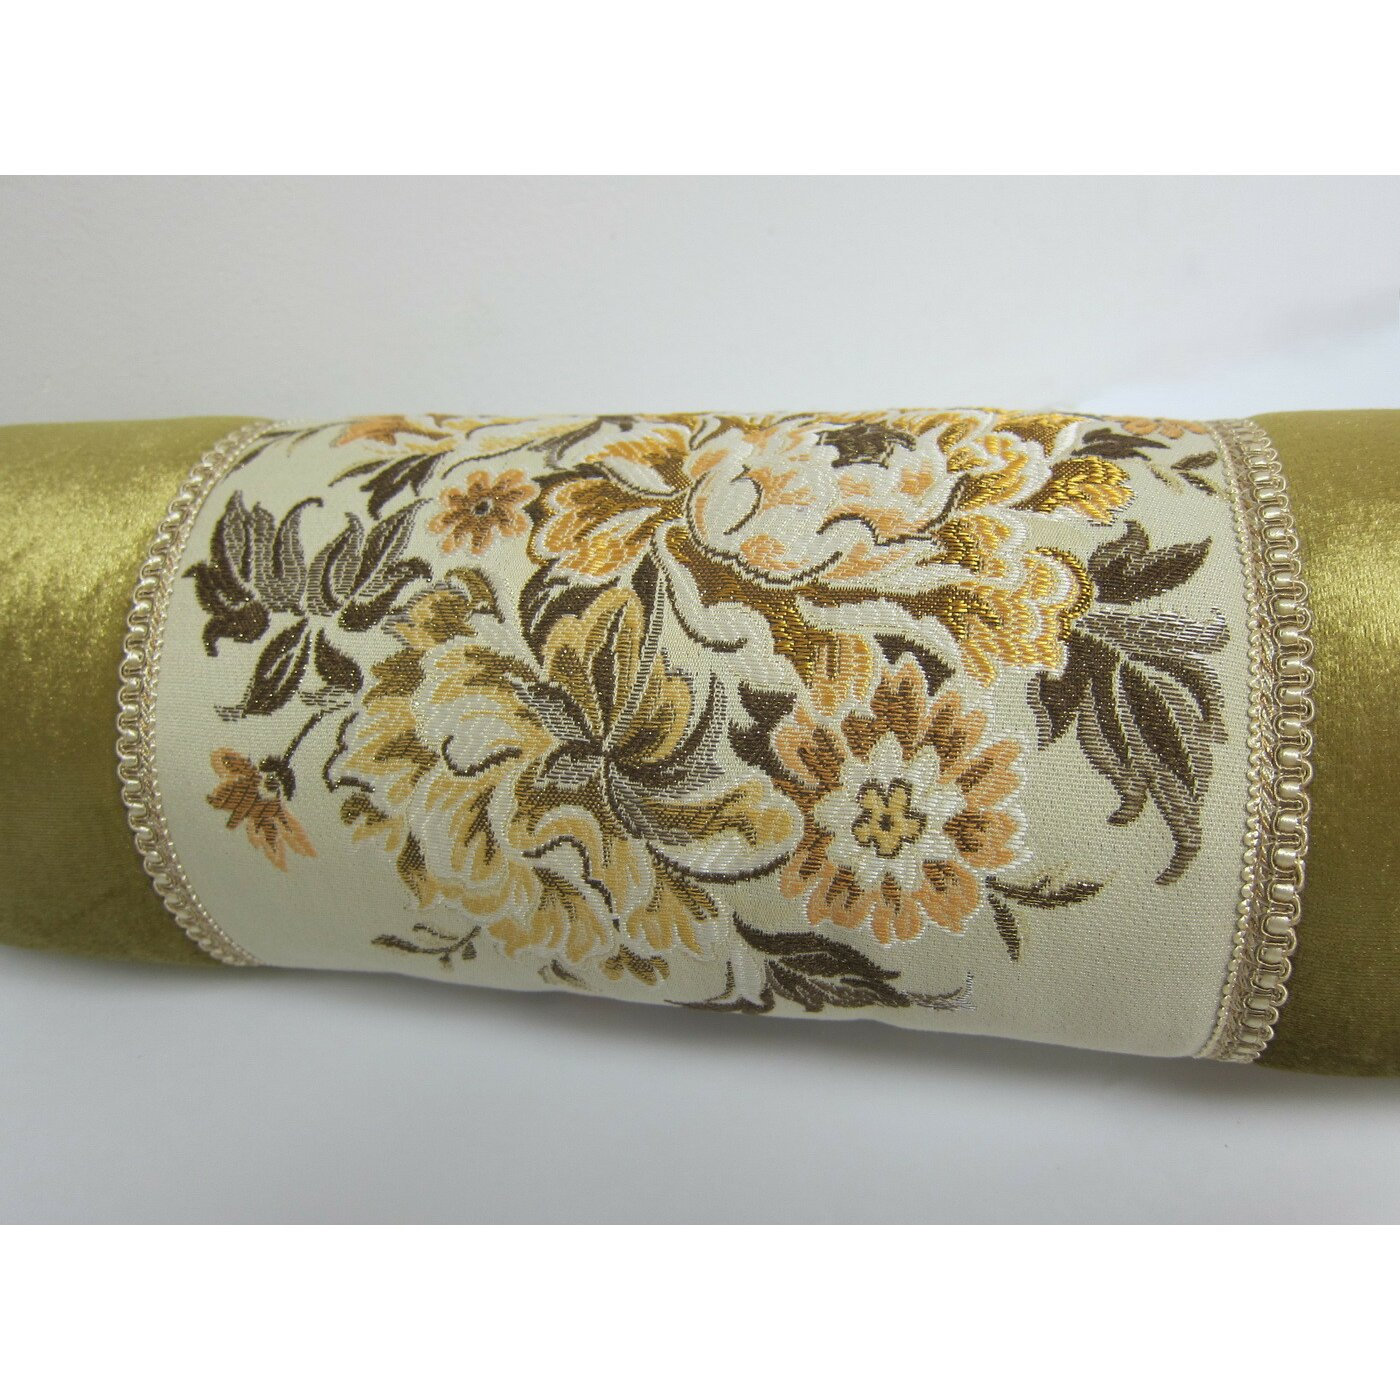 Wayfair Decorative Pillow Covers : AirDoDo European Floral Bolster Pillow Cover Wayfair